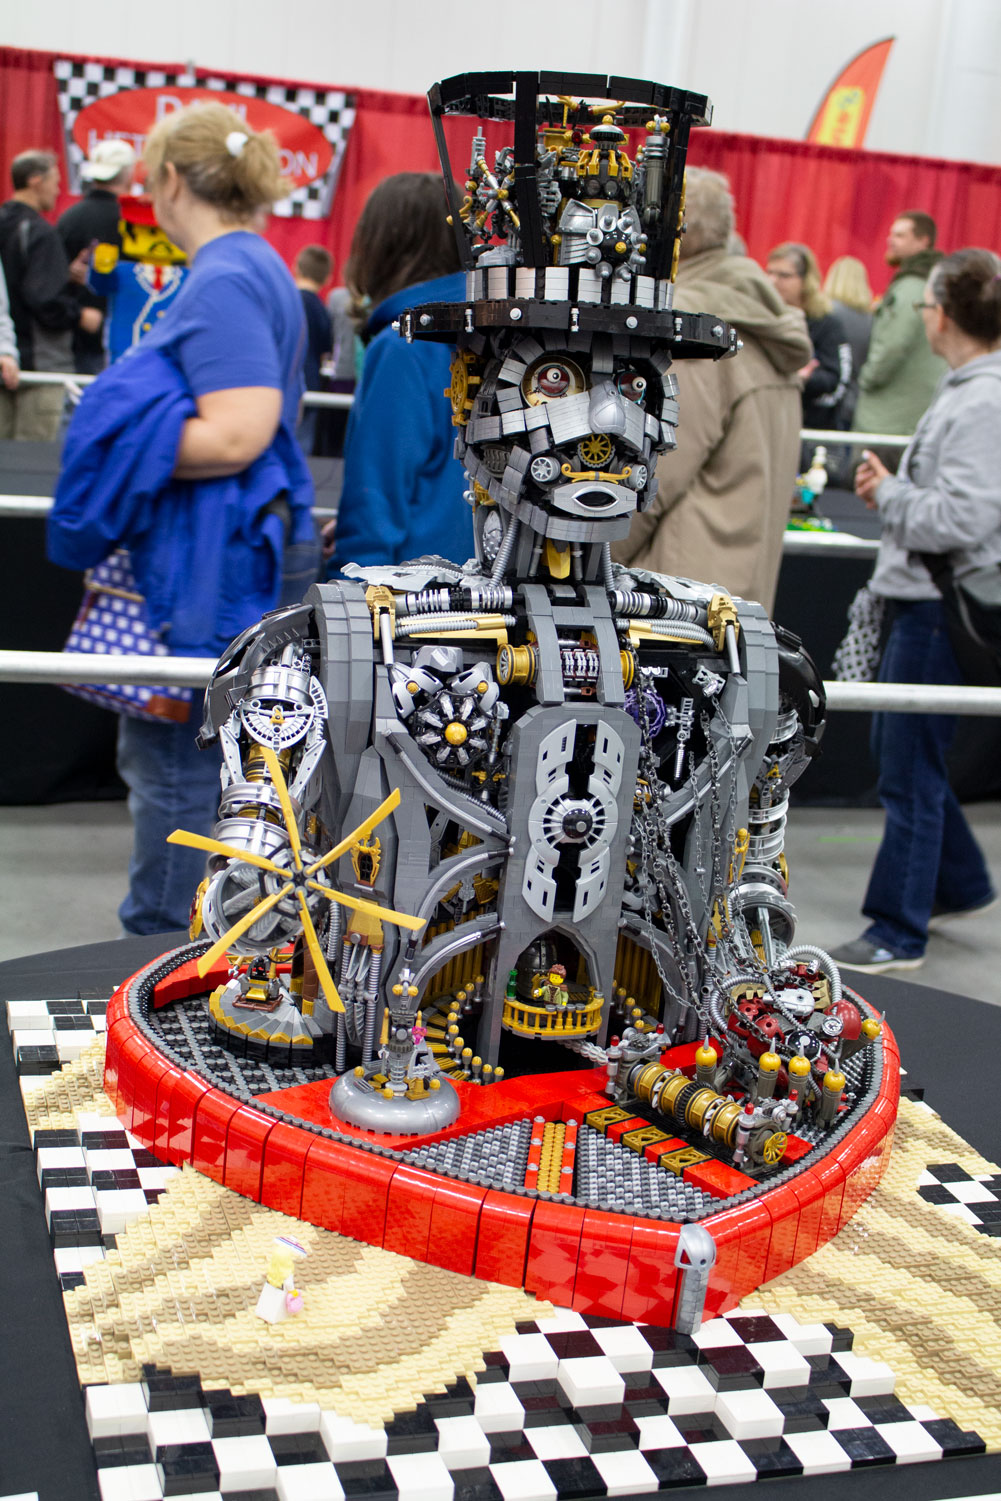 A+steam+robot+entitled+%22Unchain+my+Heart%22+by+Paul+Hetherington+is+made+up+of+18%2C300+Lego+bricks+and+took+the+artist+230+hours+to+build.